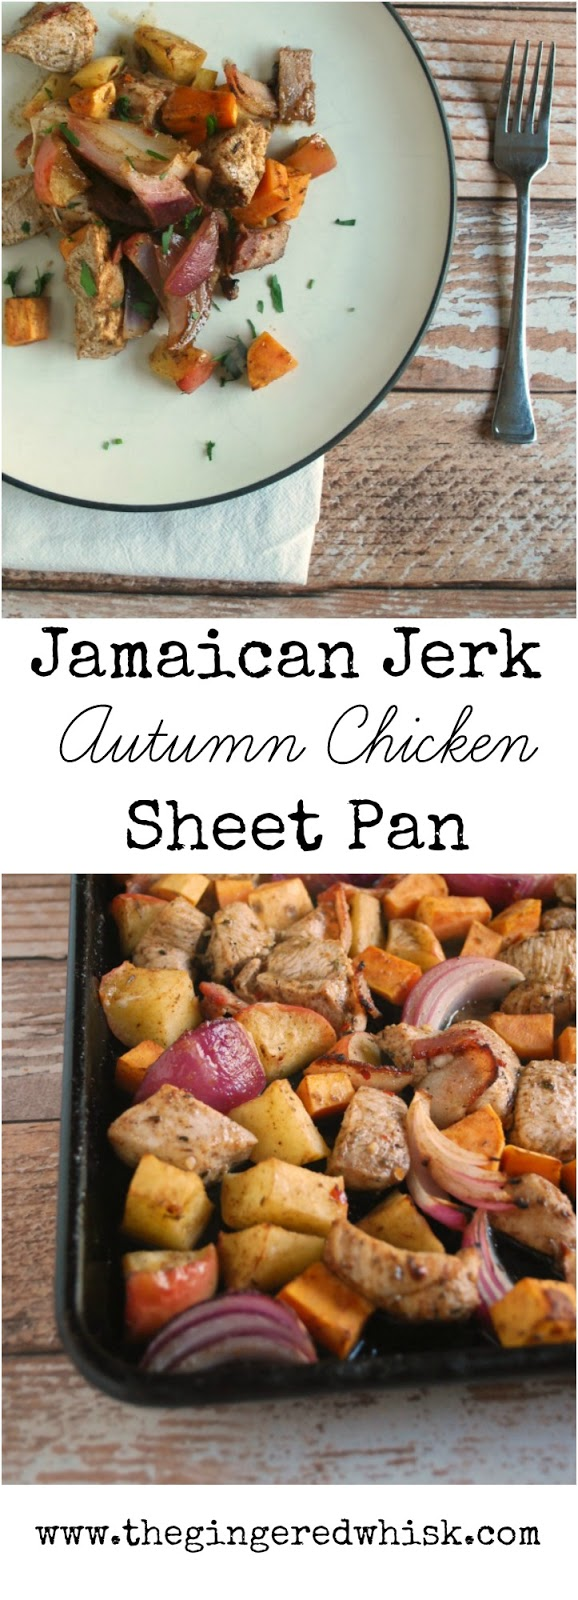 This easy sheet pan dinner boasts some of fall's best produce while spicing it in a fun and unusual way! Your family will love this quick dinner! 